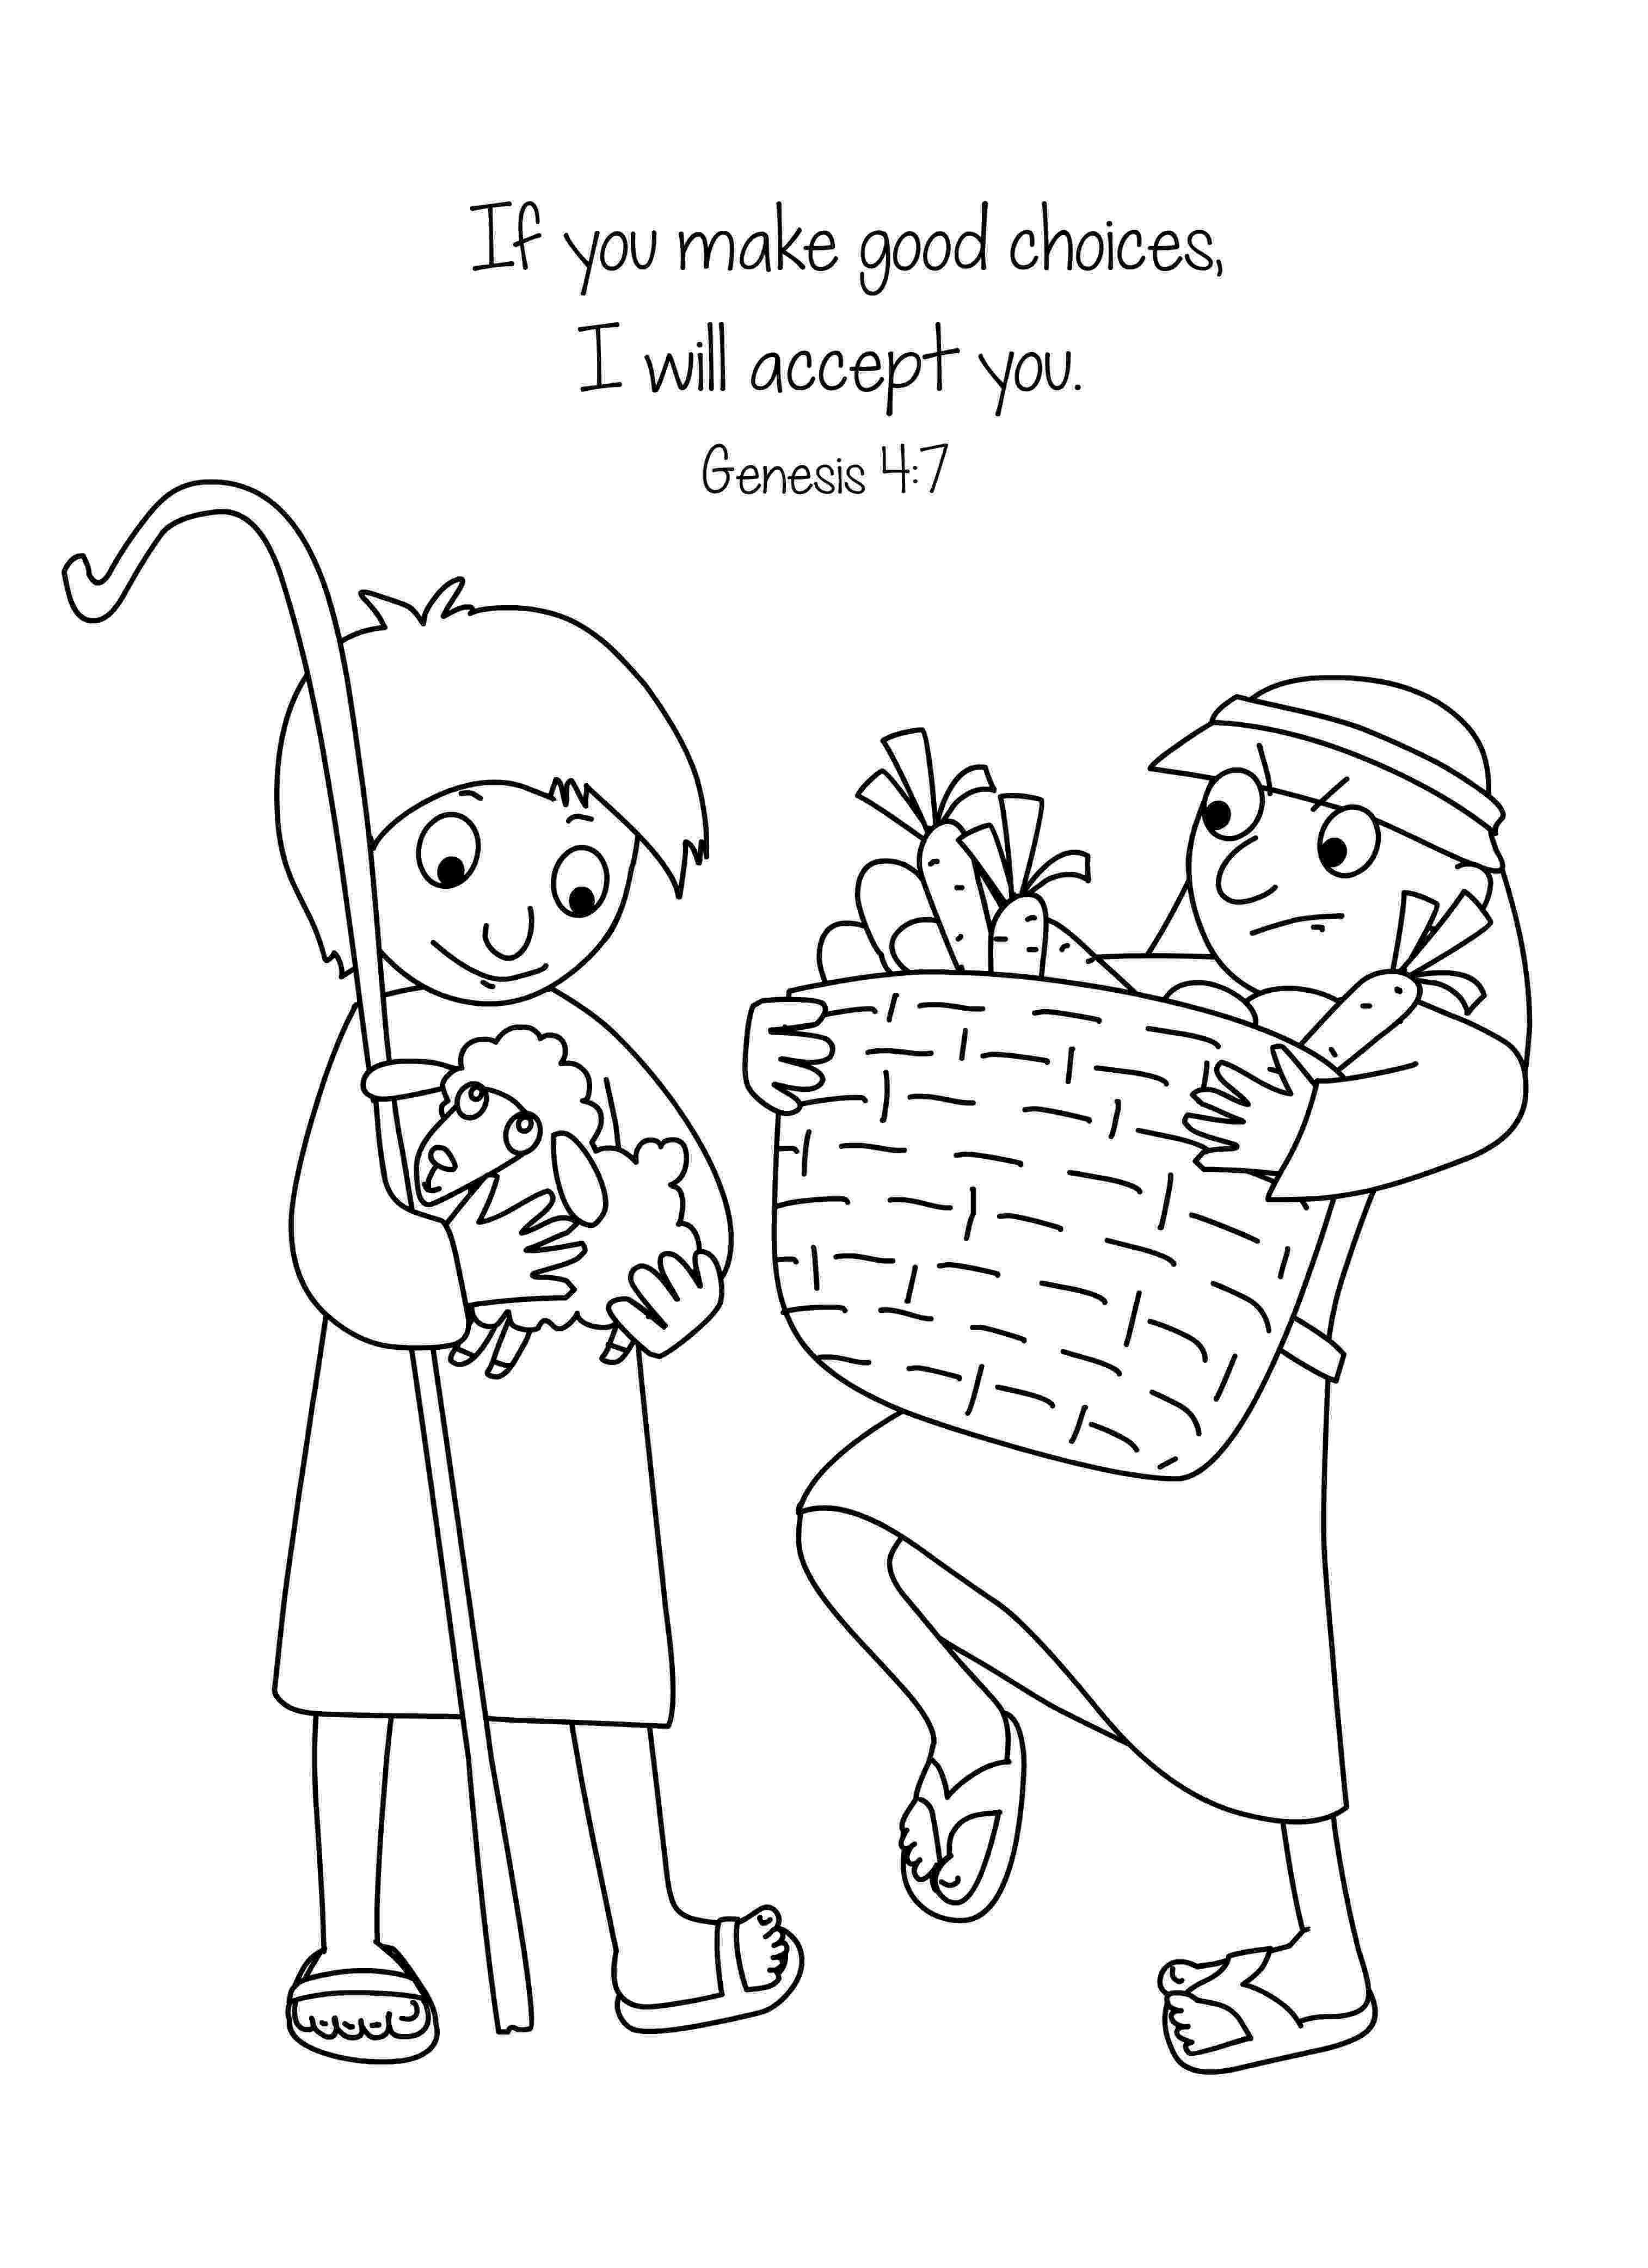 cain and abel coloring sheet my children39s curriculum cain and abel abel sheet cain and coloring